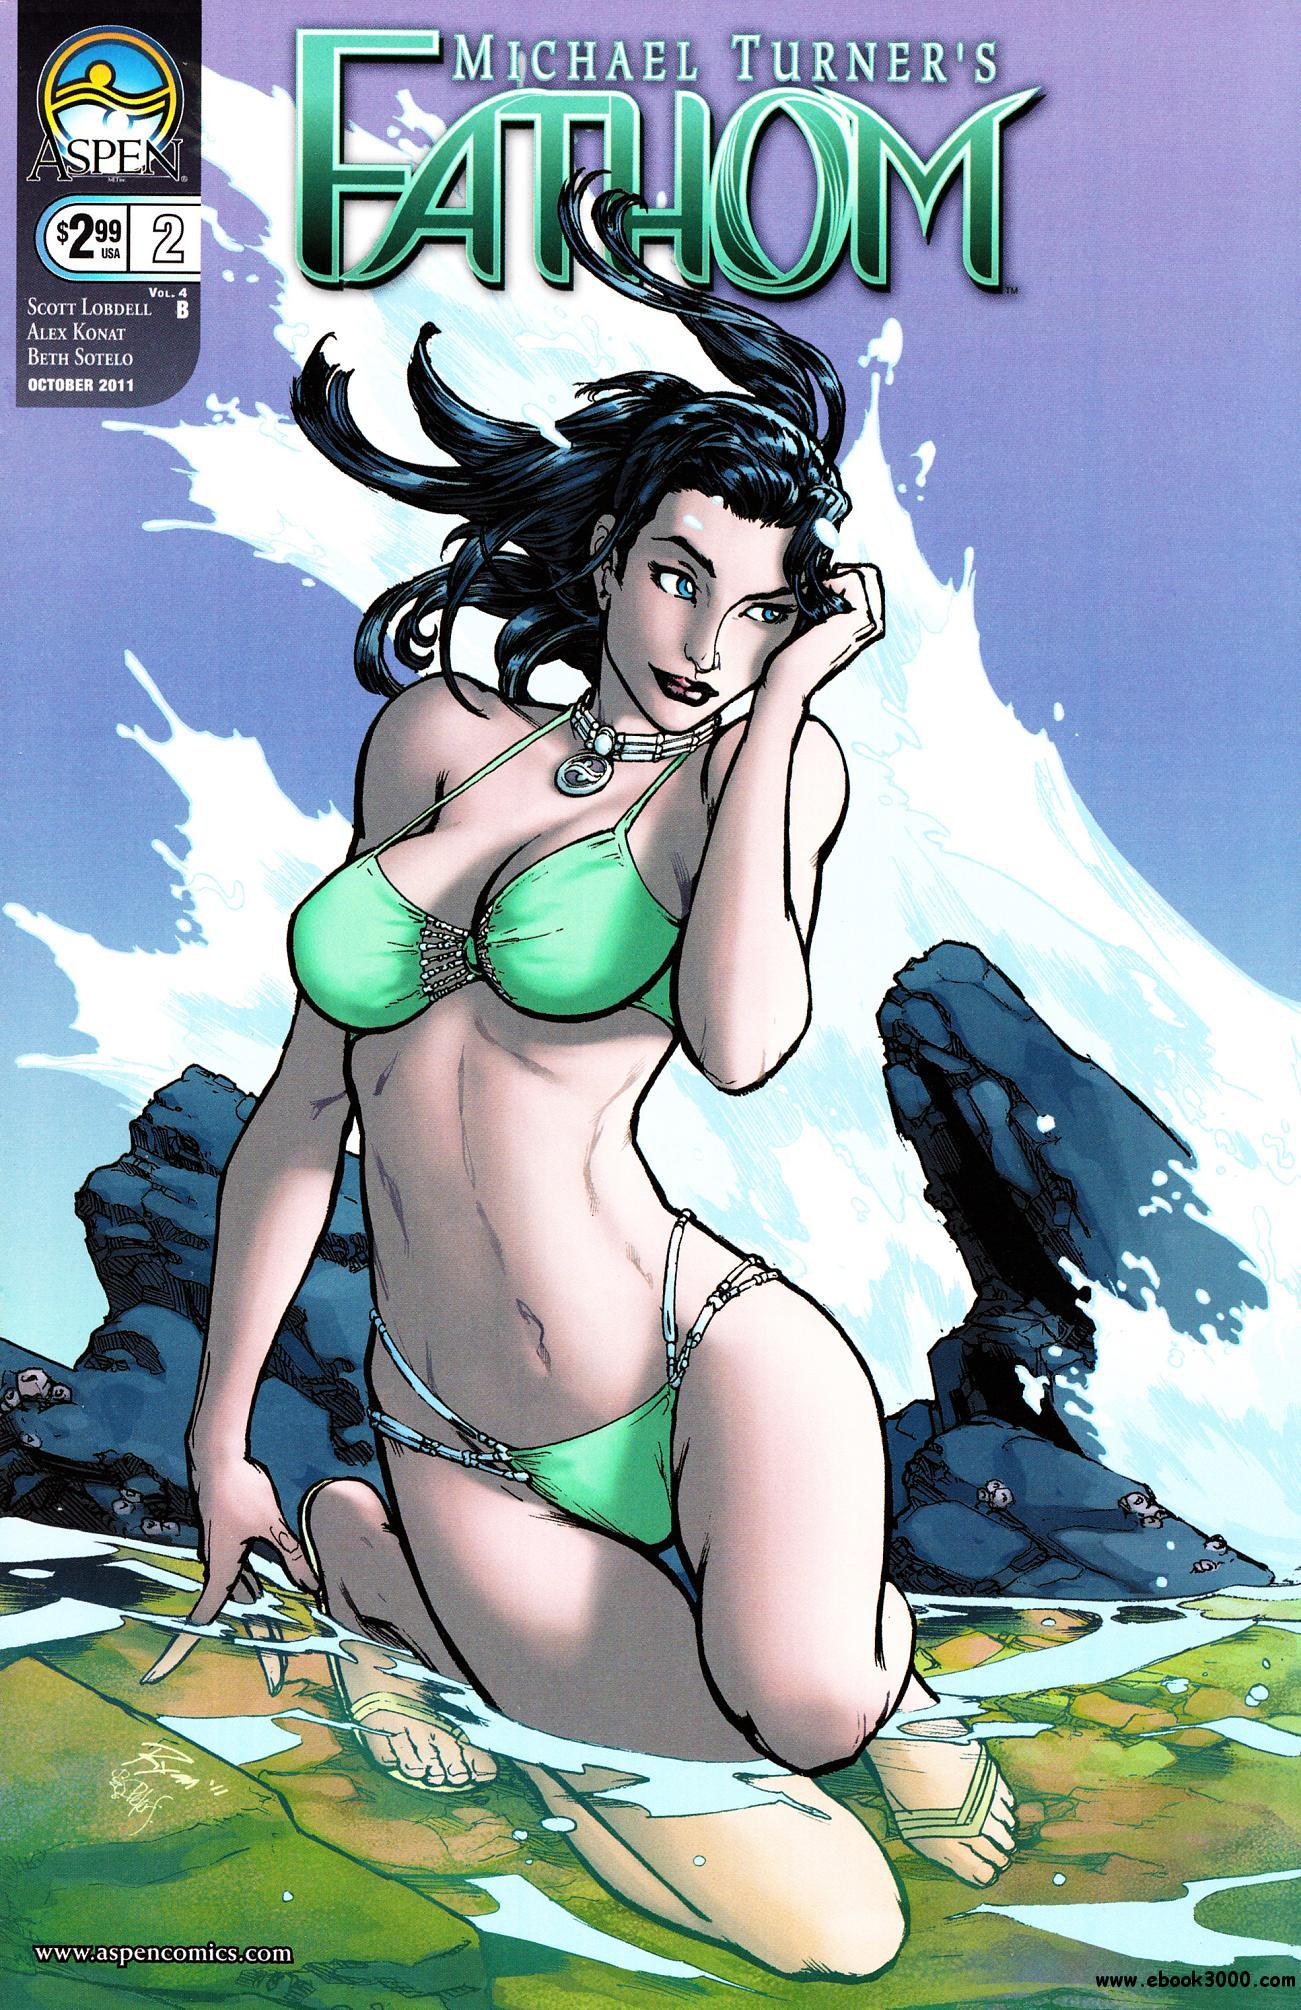 Fathom Vol. 4 #2 (2011) free download